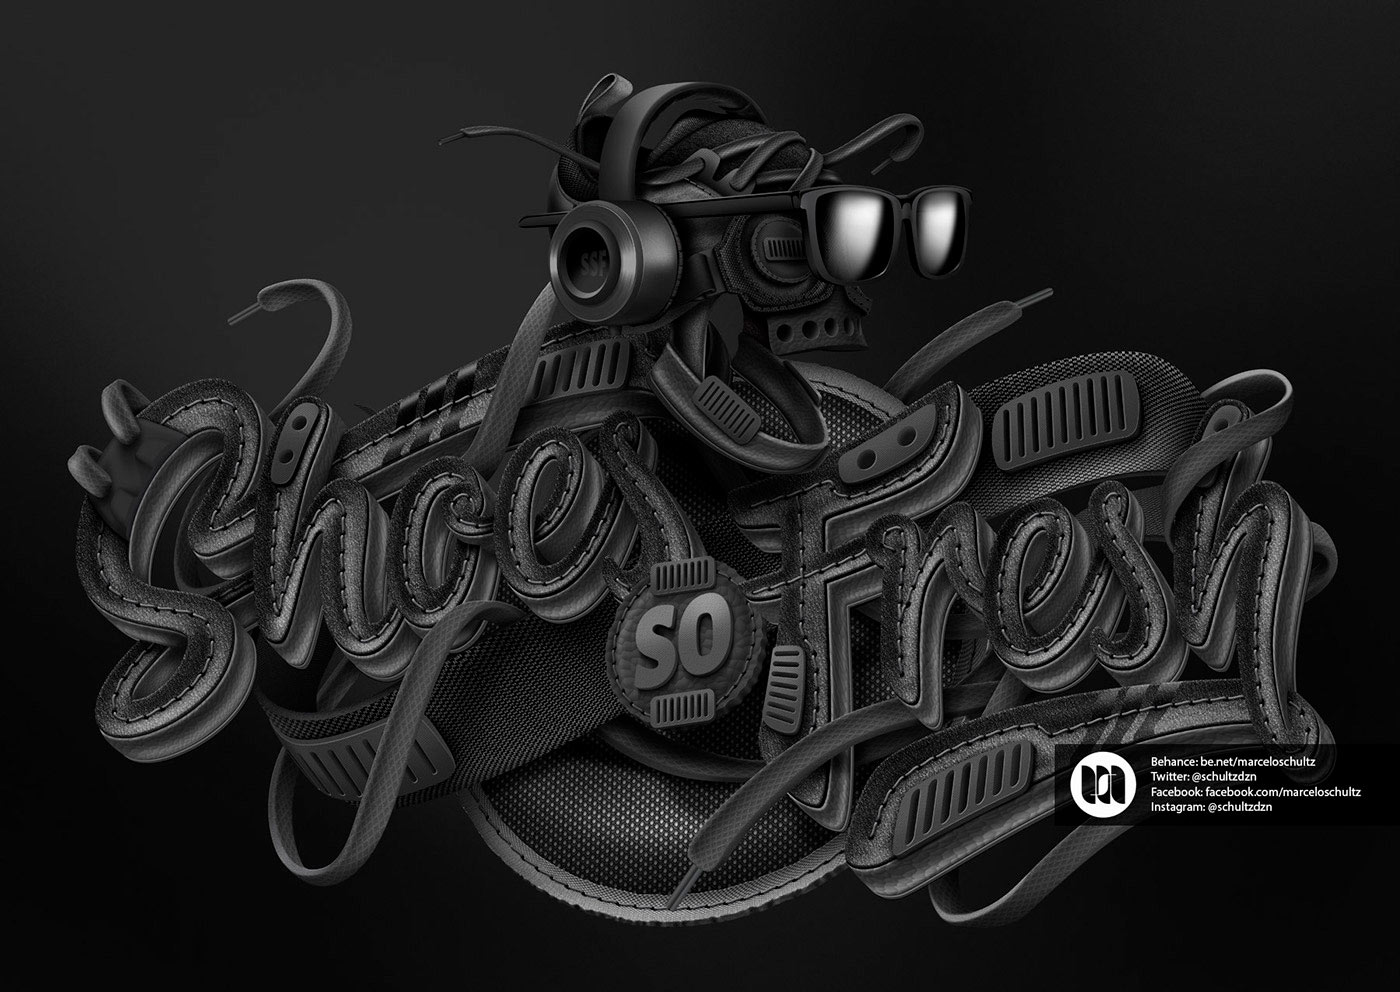 Shoes So Fresh - Typography & Illustration by Marcelo Schultz